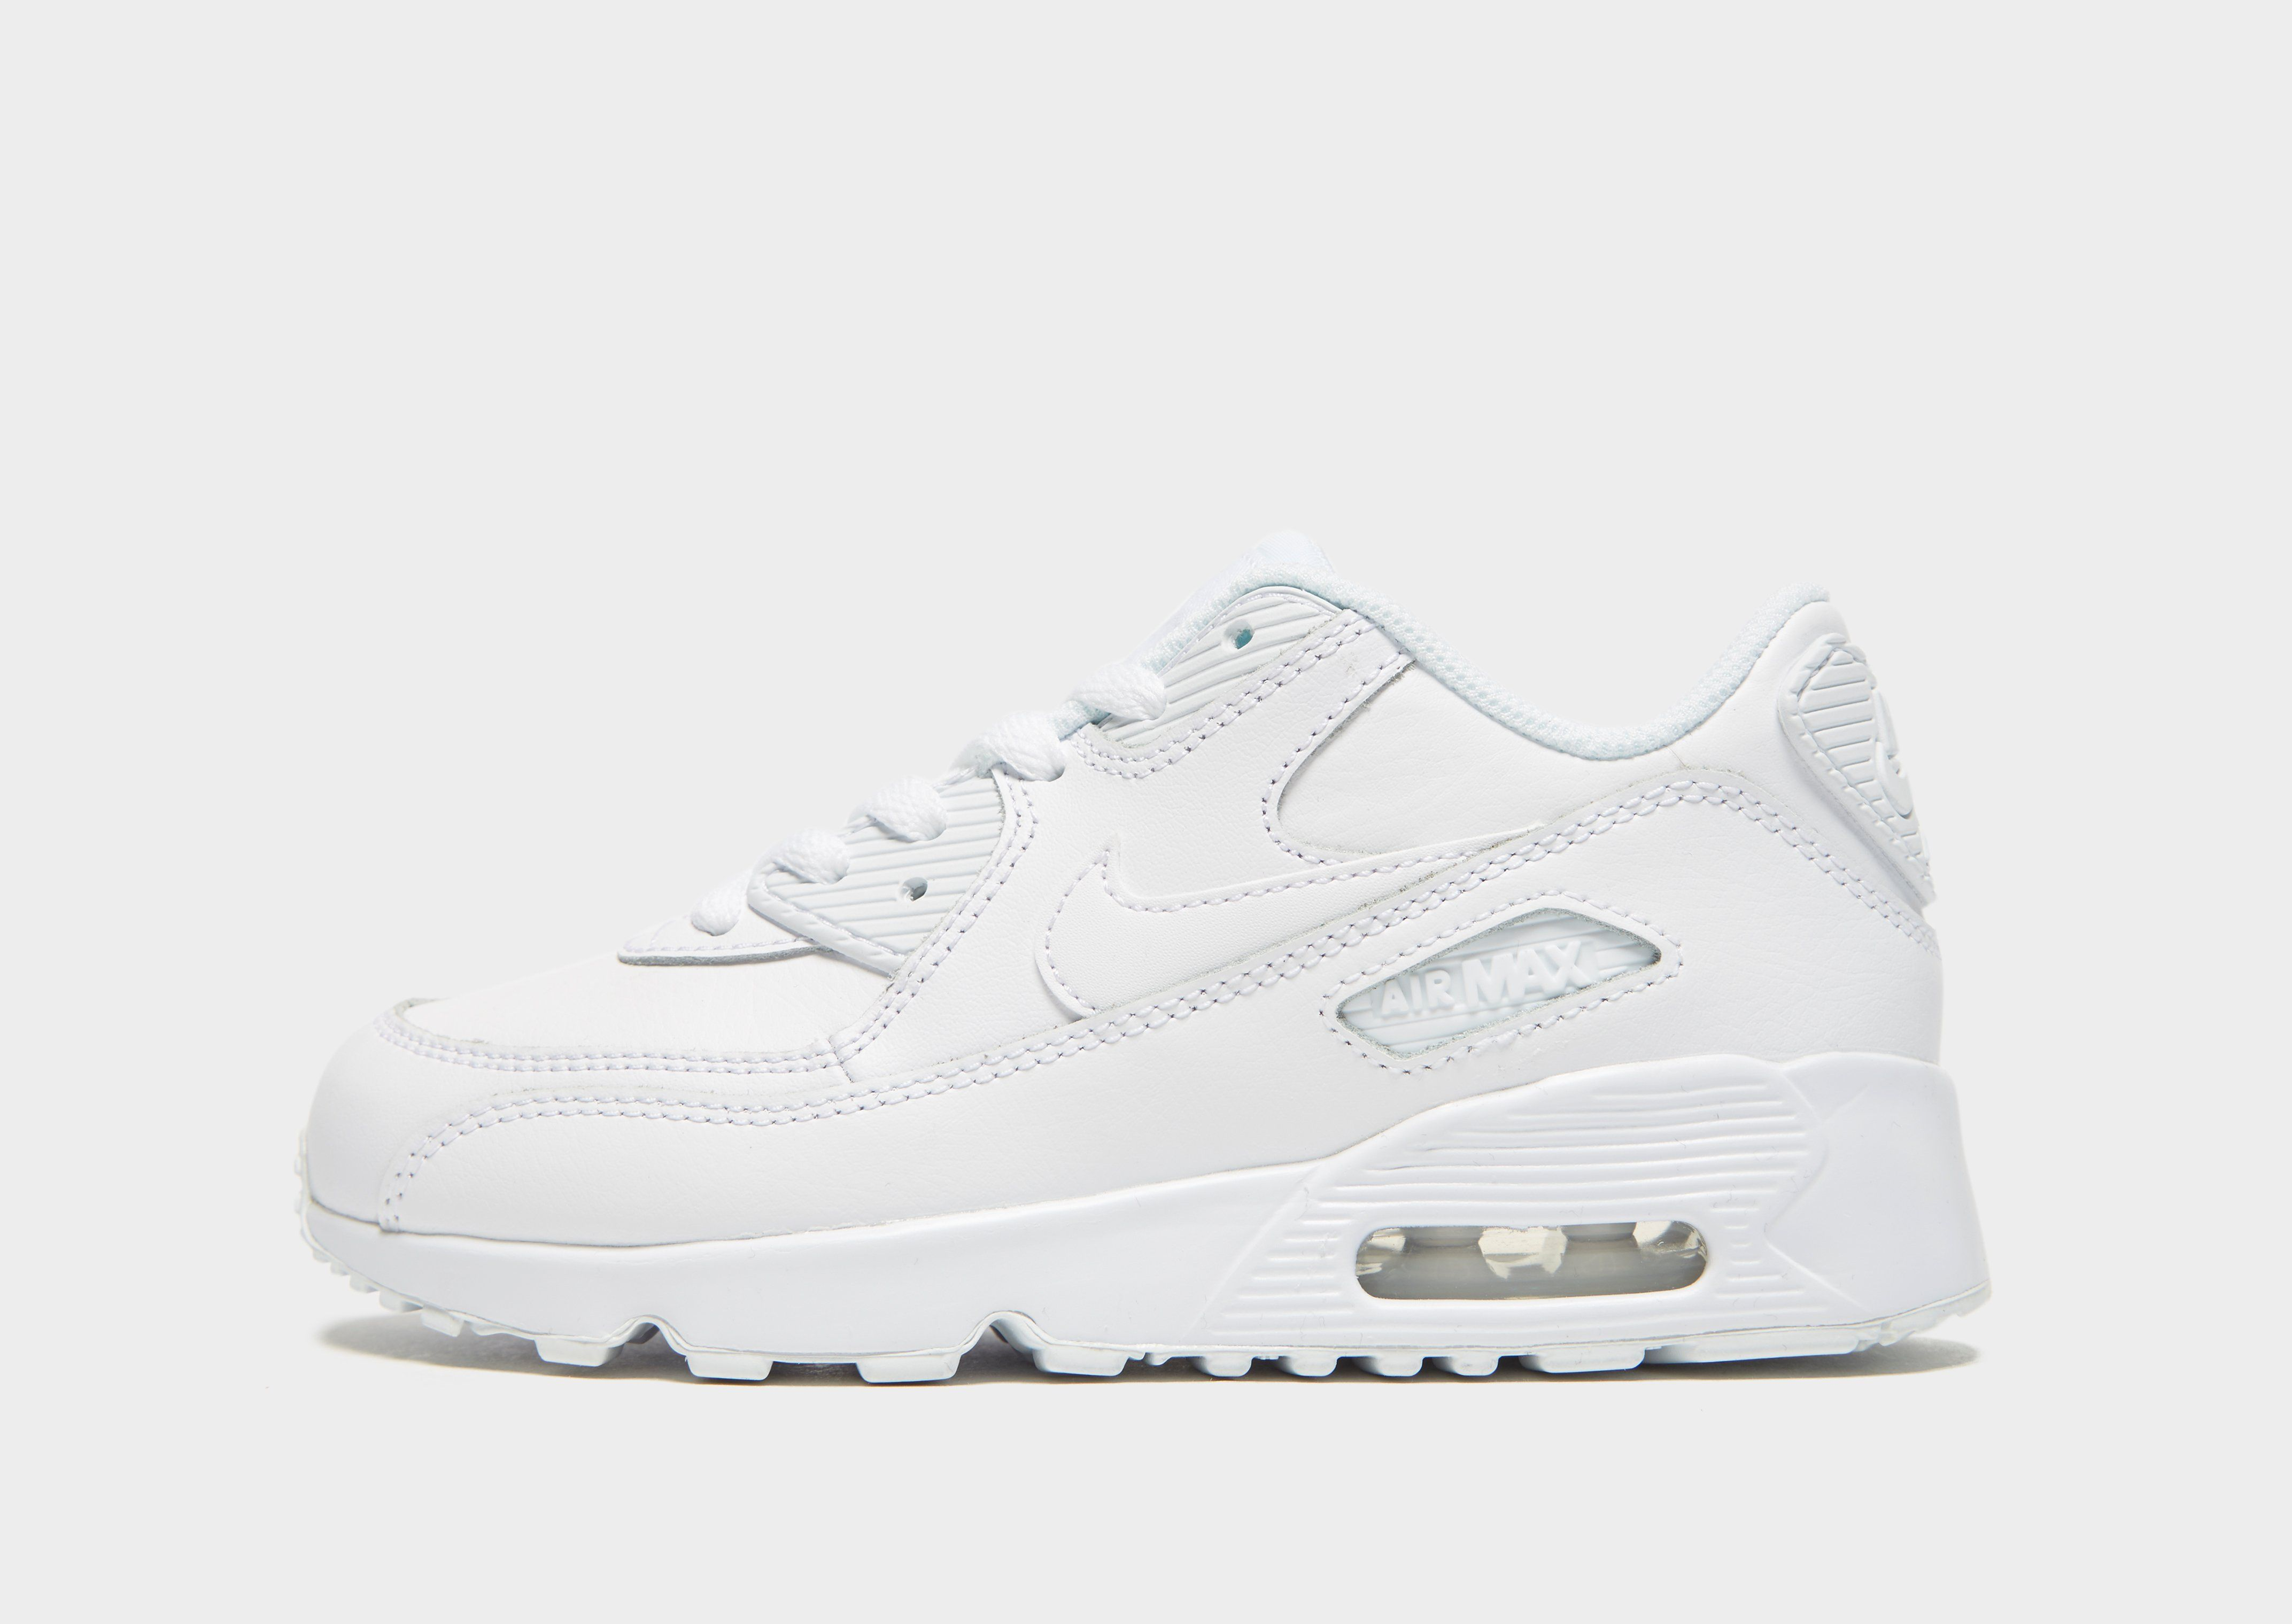 15a7ba47c6 Find every shop in the world selling delivery nike air at PricePi ...